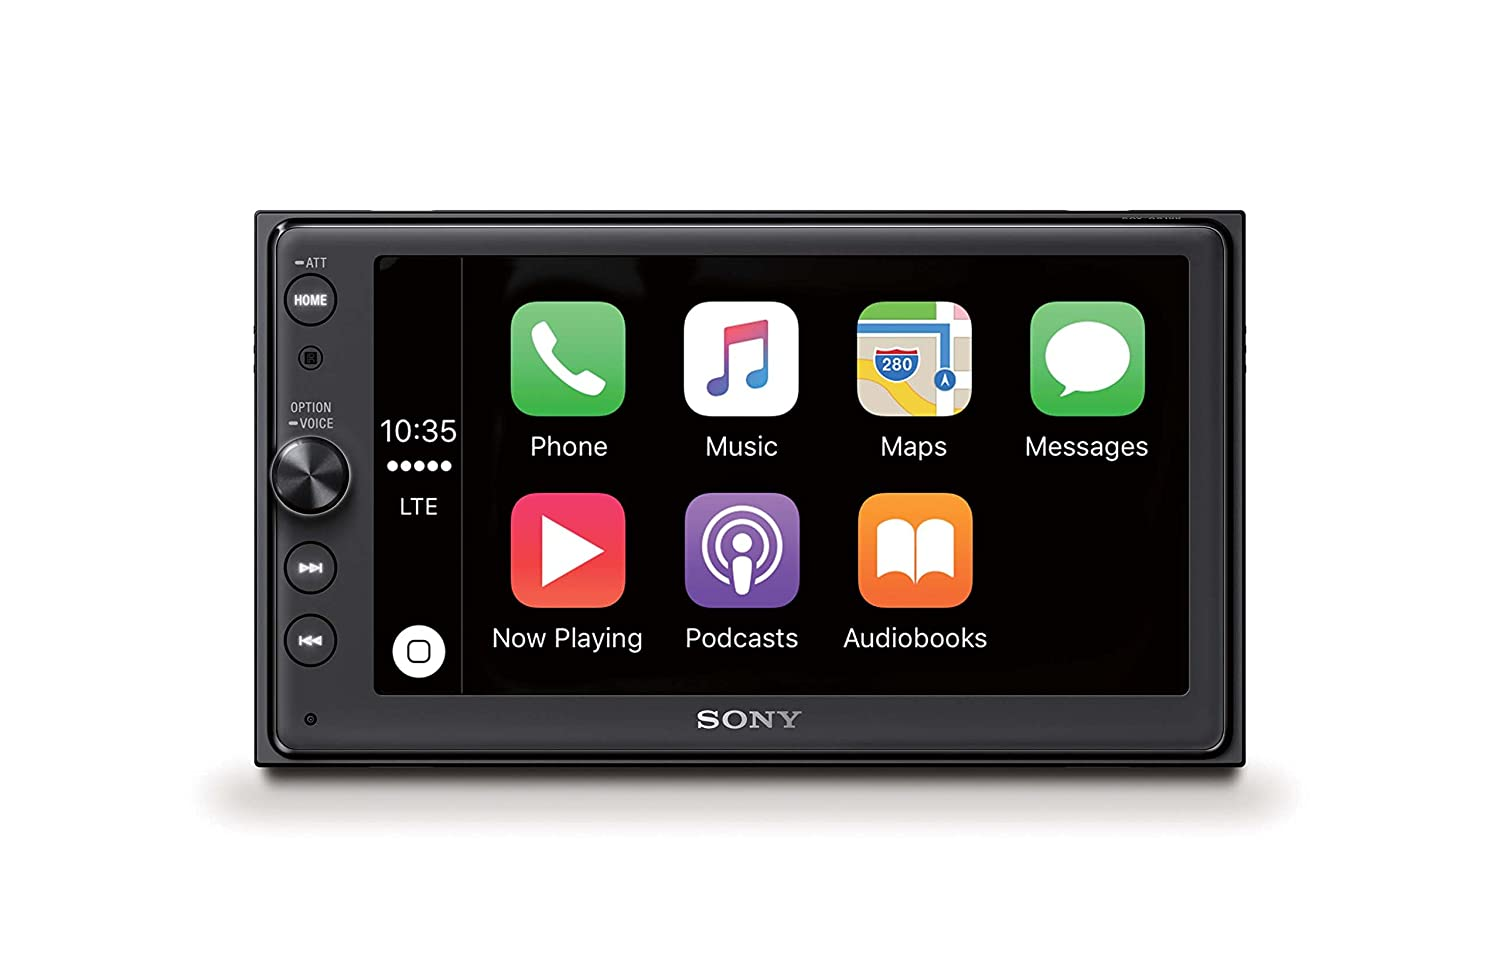 Sony XAV-AX100 6 4 inch Media Receiver with Bluetooth, CarPlay and Android  Auto, 4 x 55 W